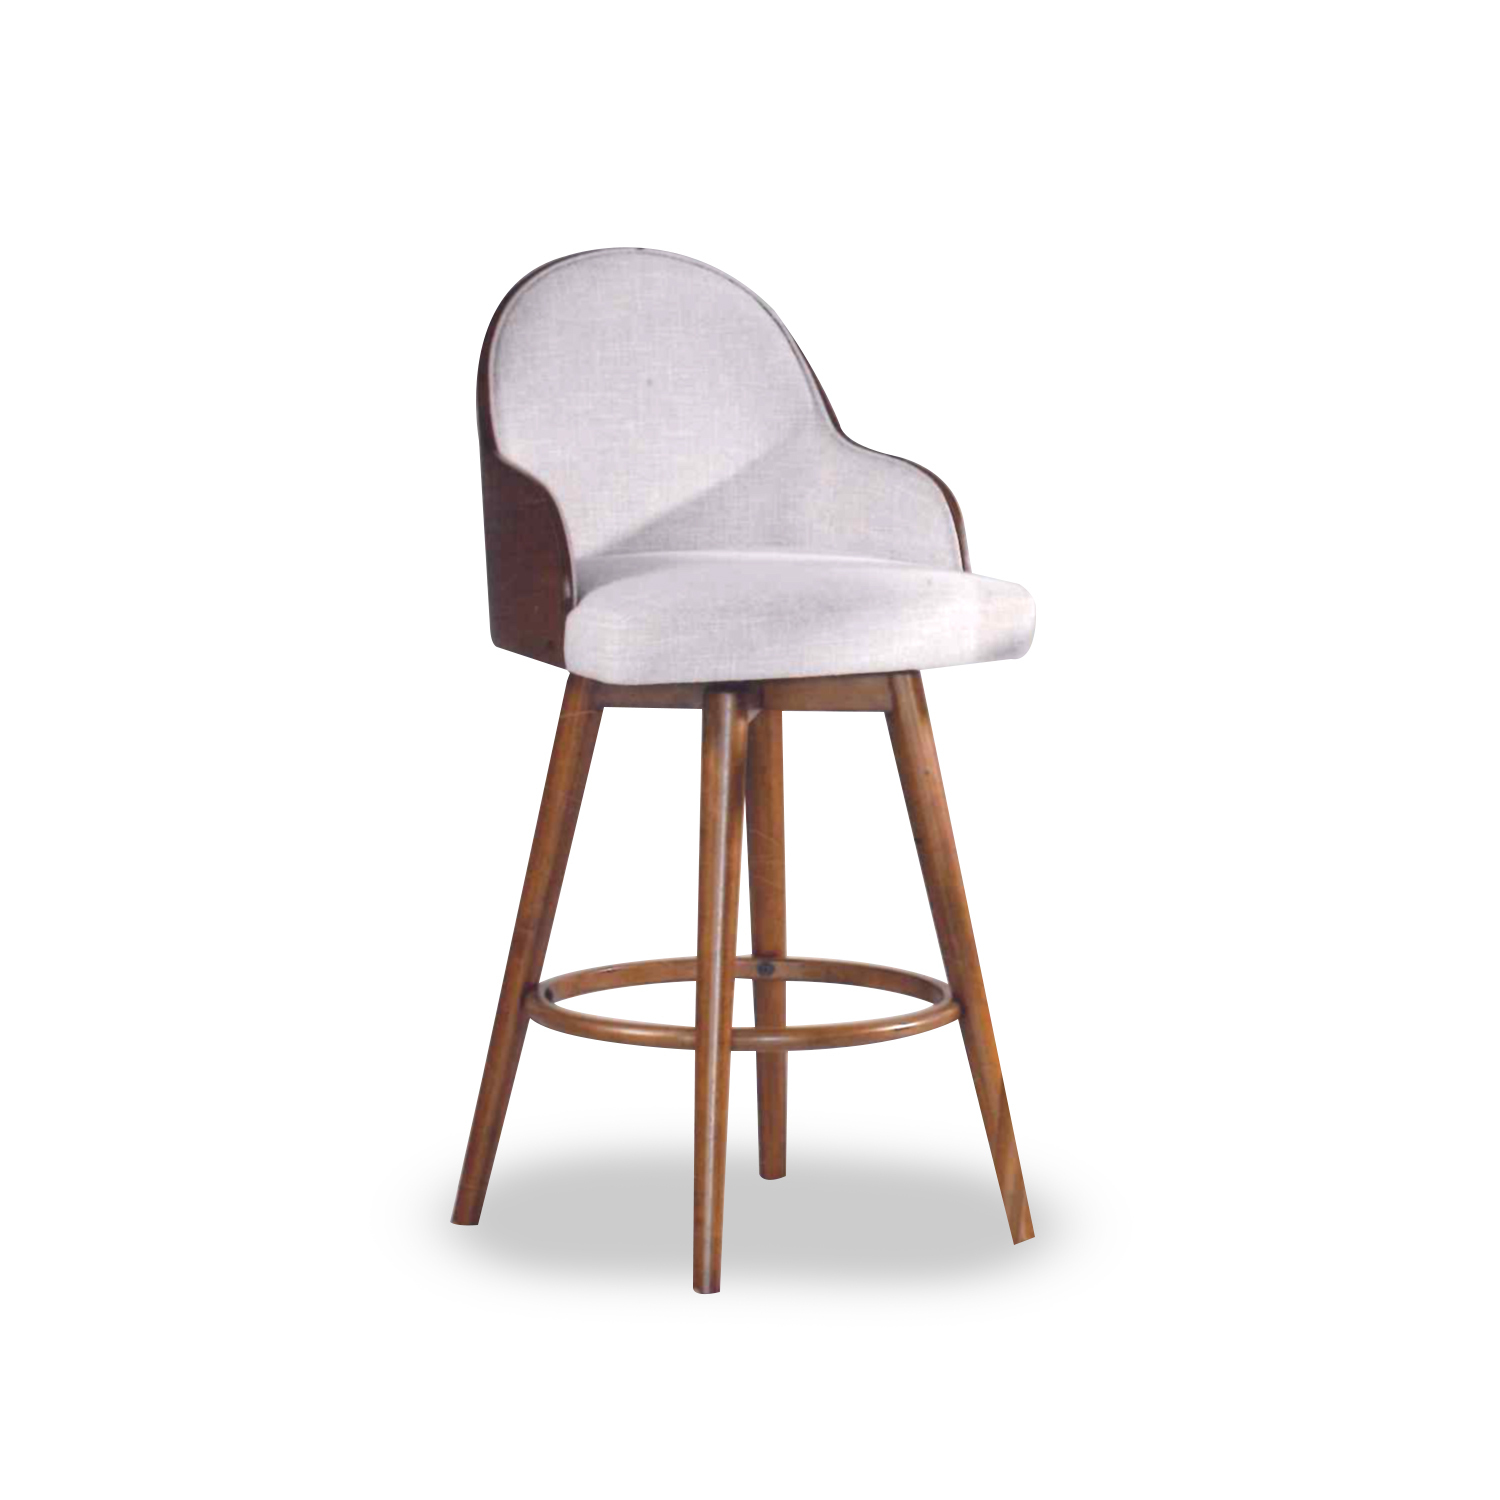 bar chair 3540.jpg